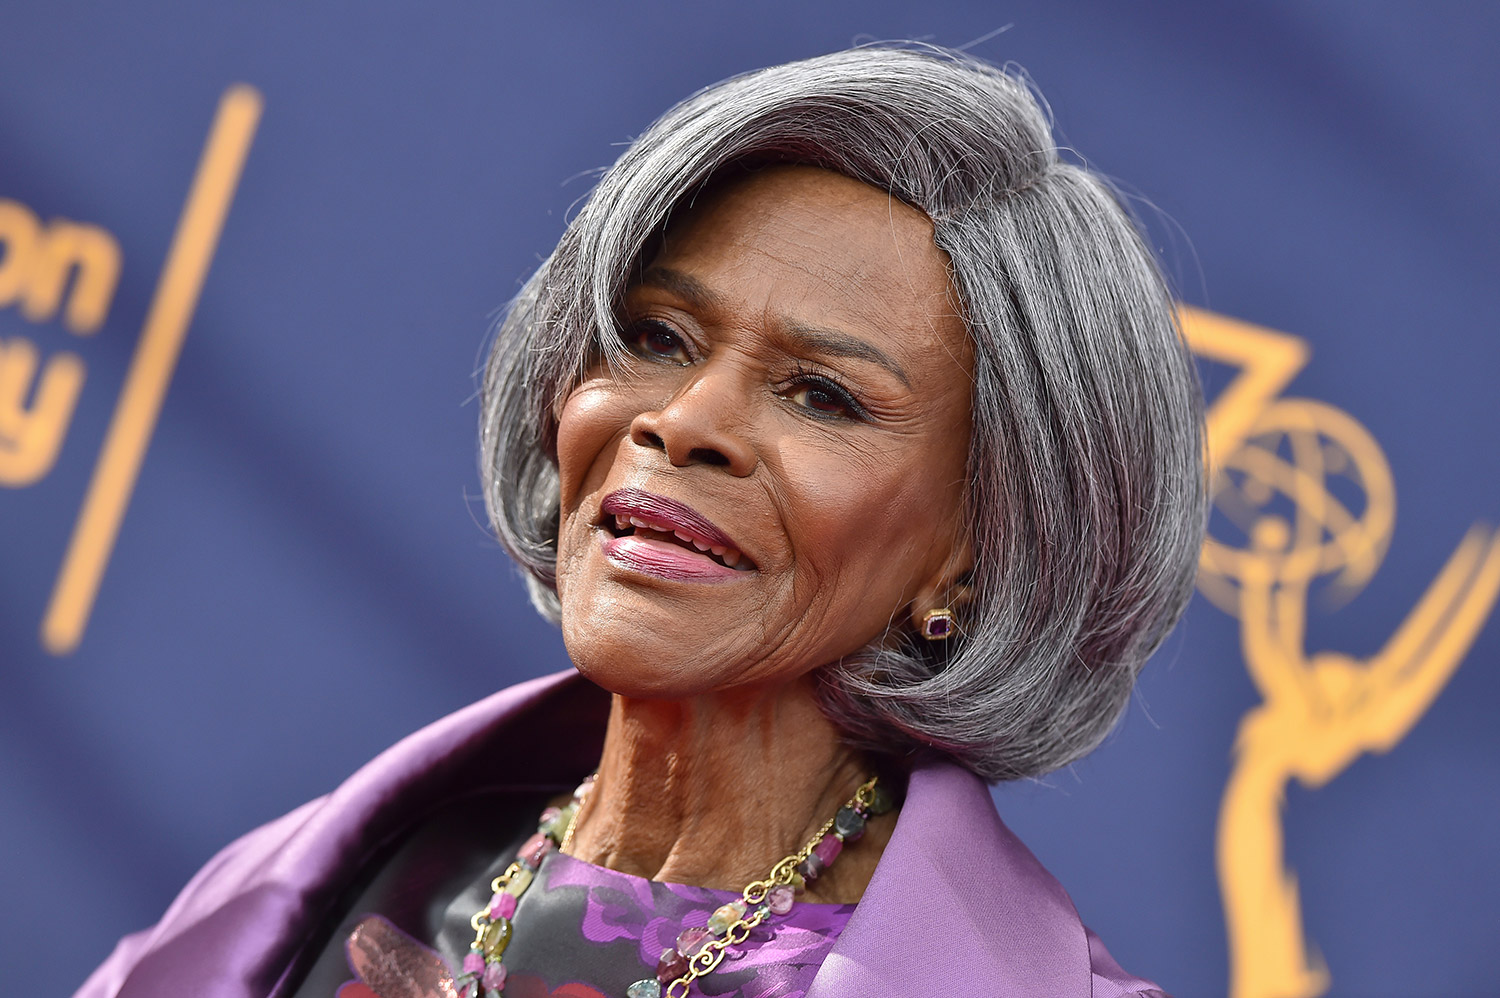 Cicely Tyson Remembered by Octavia Spencer, Shonda Rhimes, Zendaya and More: 'A National Treasure' | PEOPLE.com